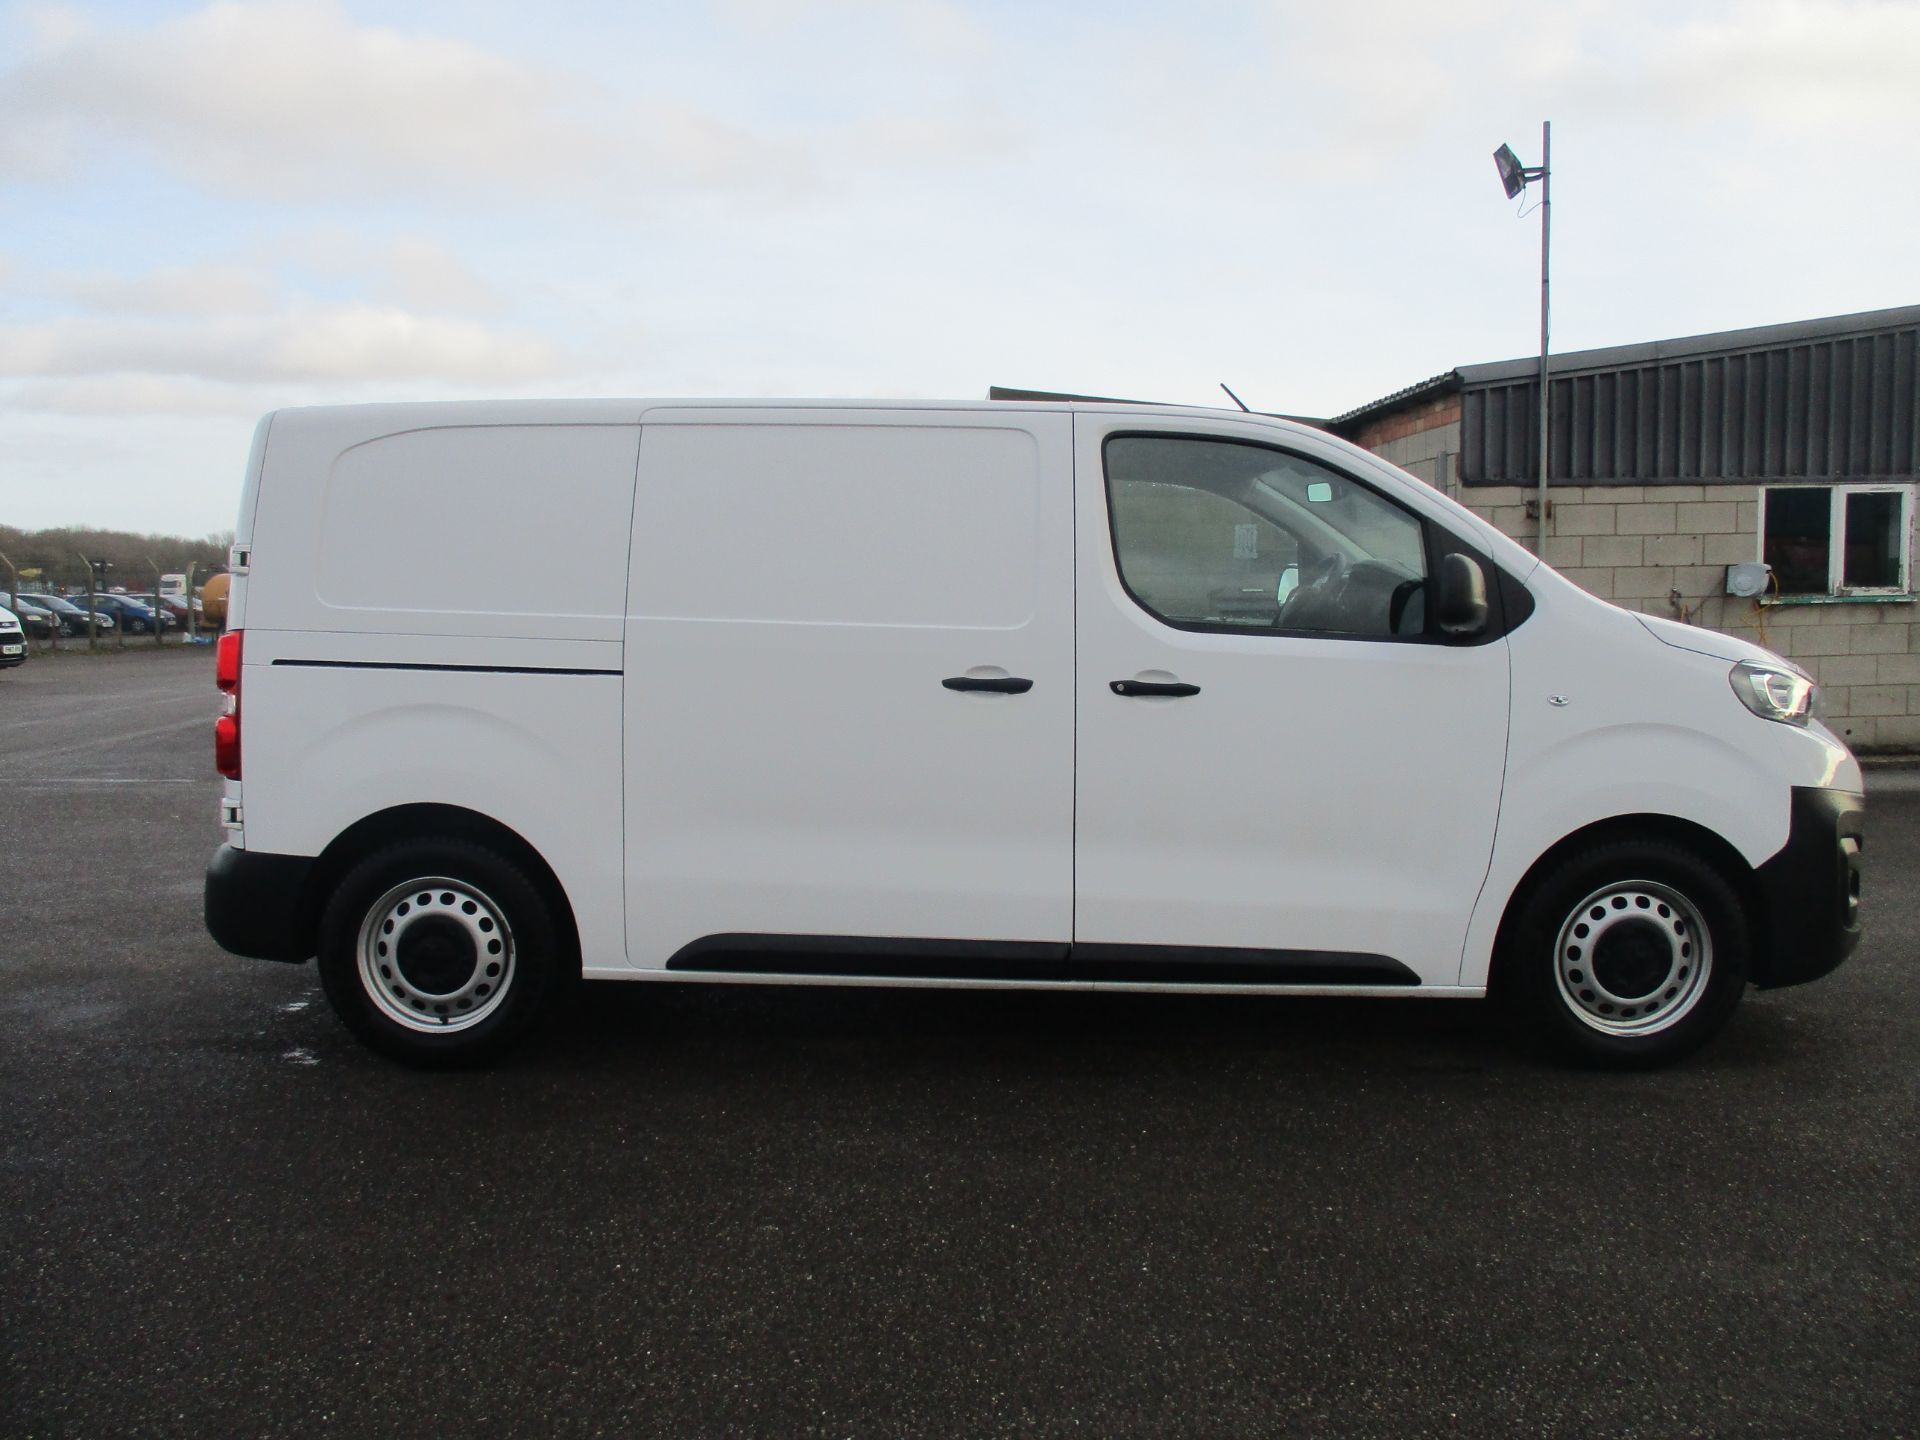 2018 Peugeot Expert STANDARD 1000 1.6 BLUE HDI 95 PROFESSIONAL EURO 6. AIR CON (NU68GXP) Image 4